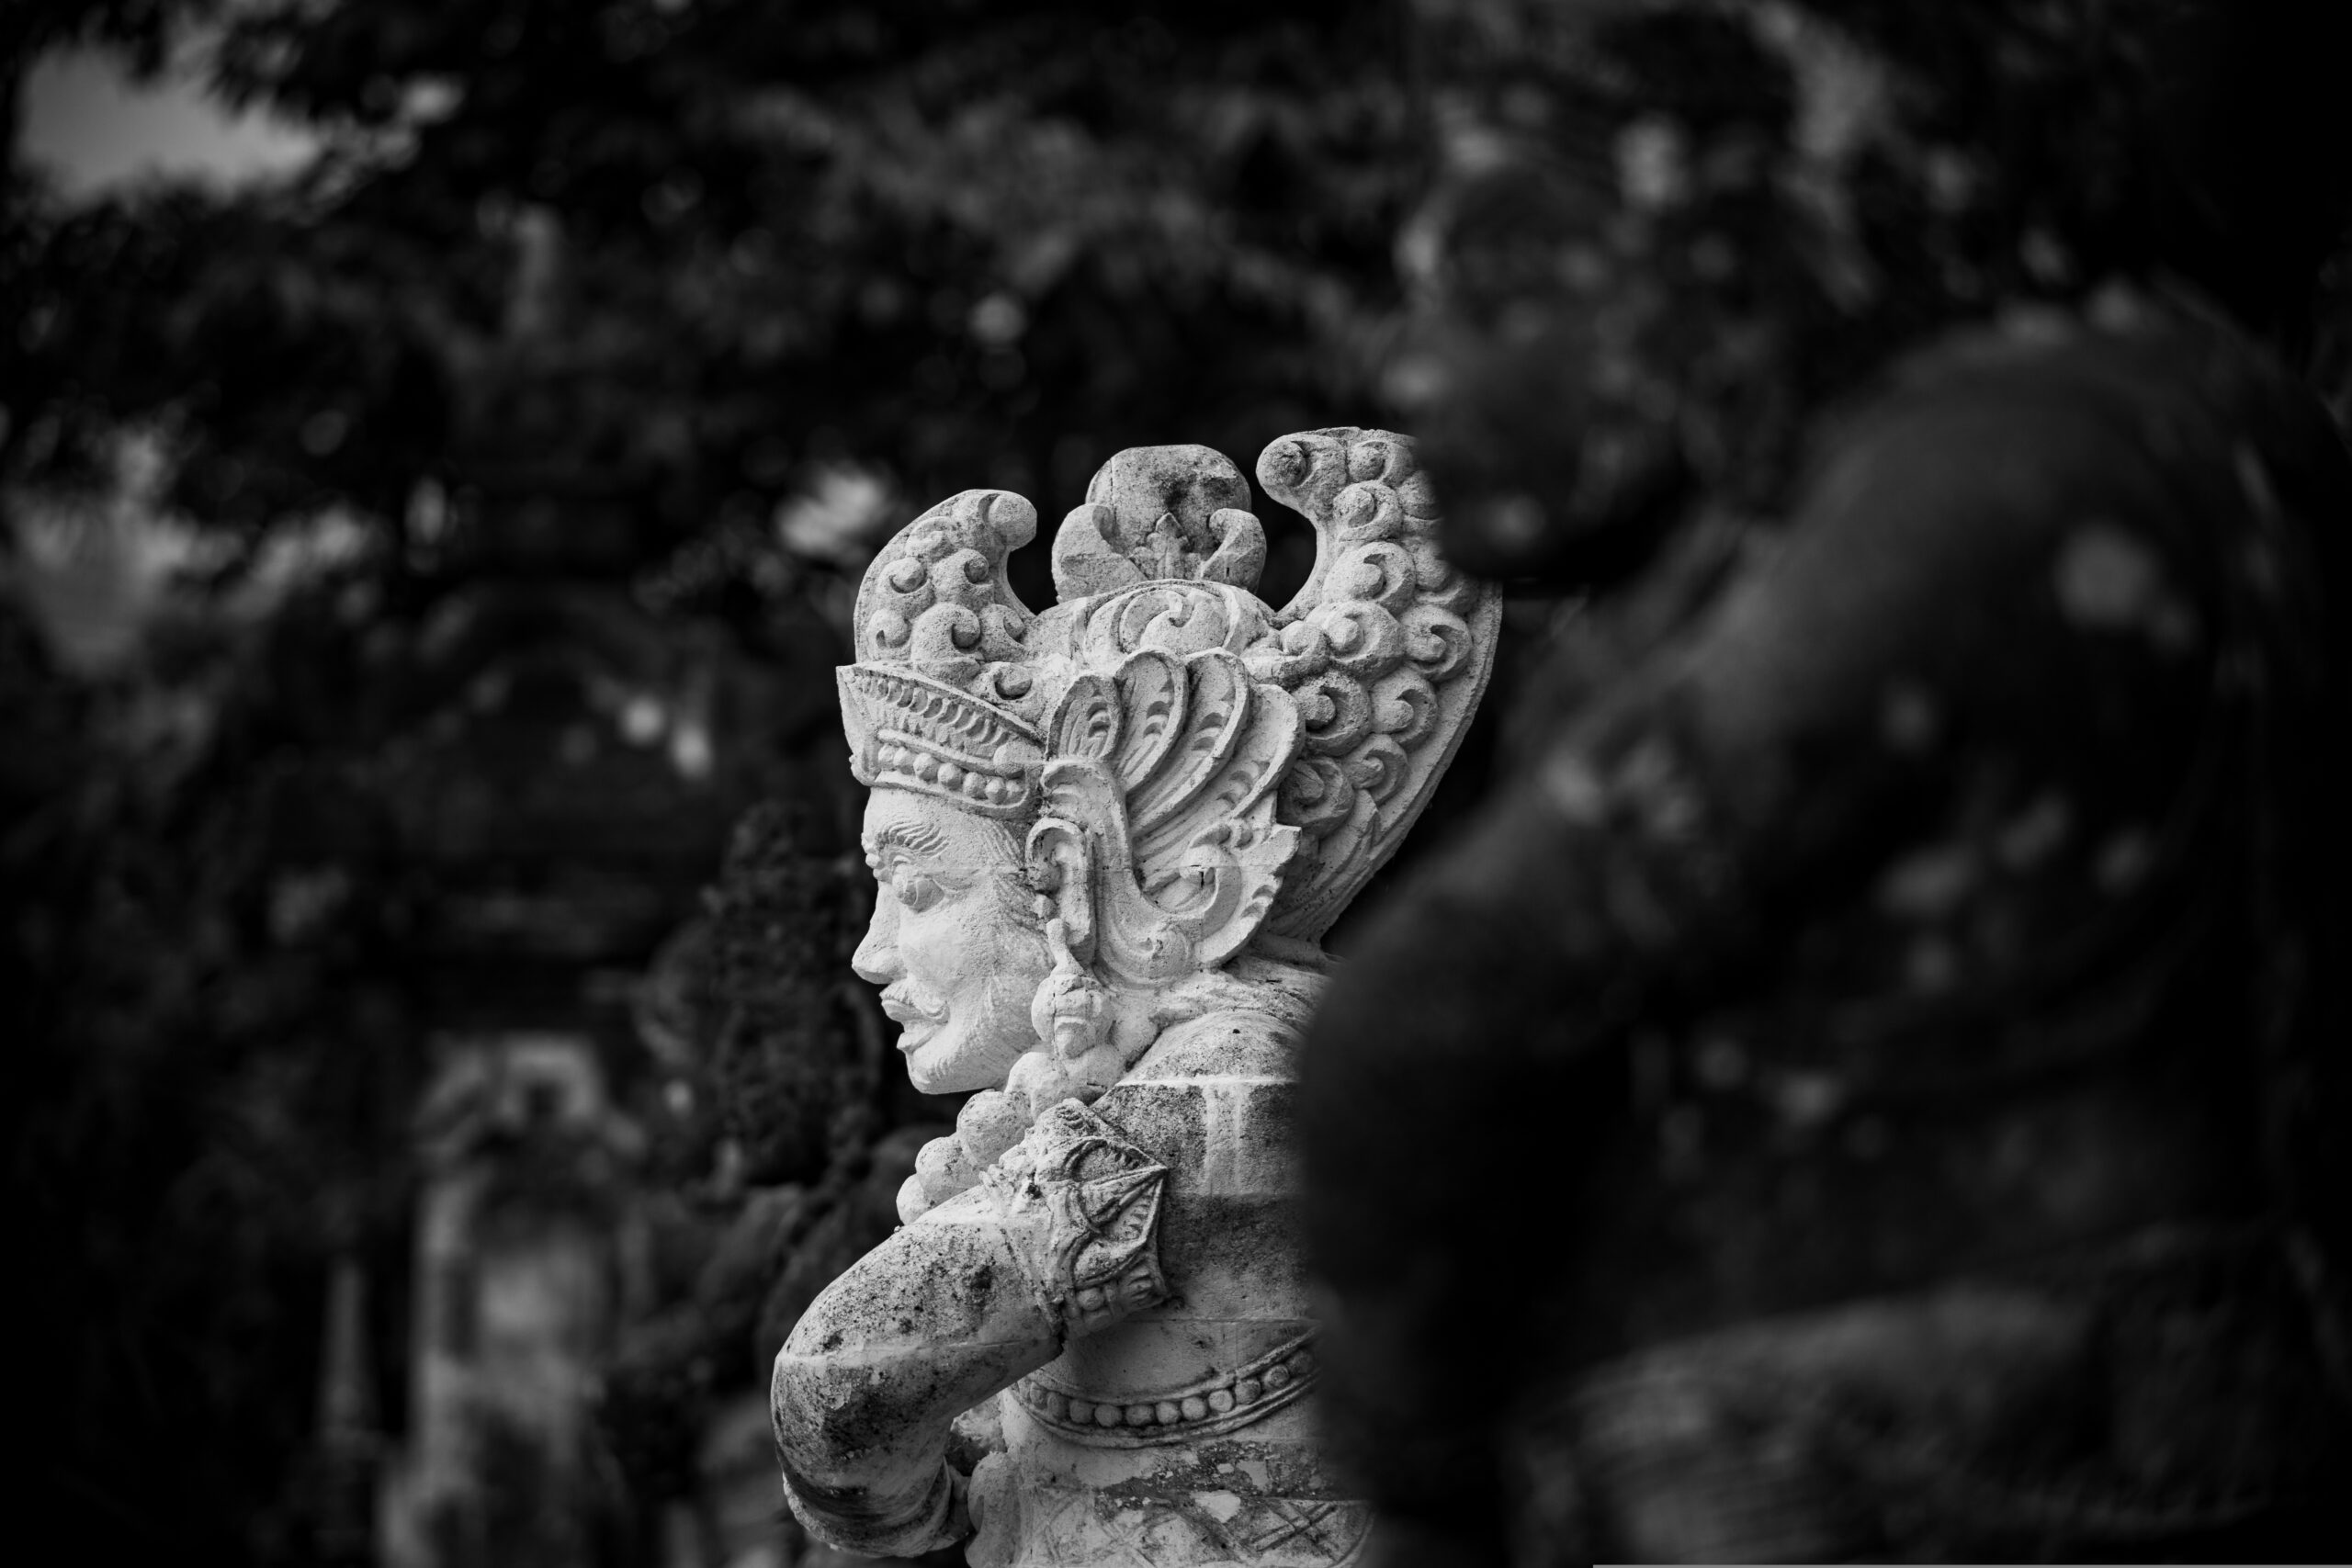 Admire The Stunning Sculptures At The Temples During The Eastern Bali Experience From Ubud, Nusa Dua, Tanjung Benoa, Seminyak And Candi Dasa